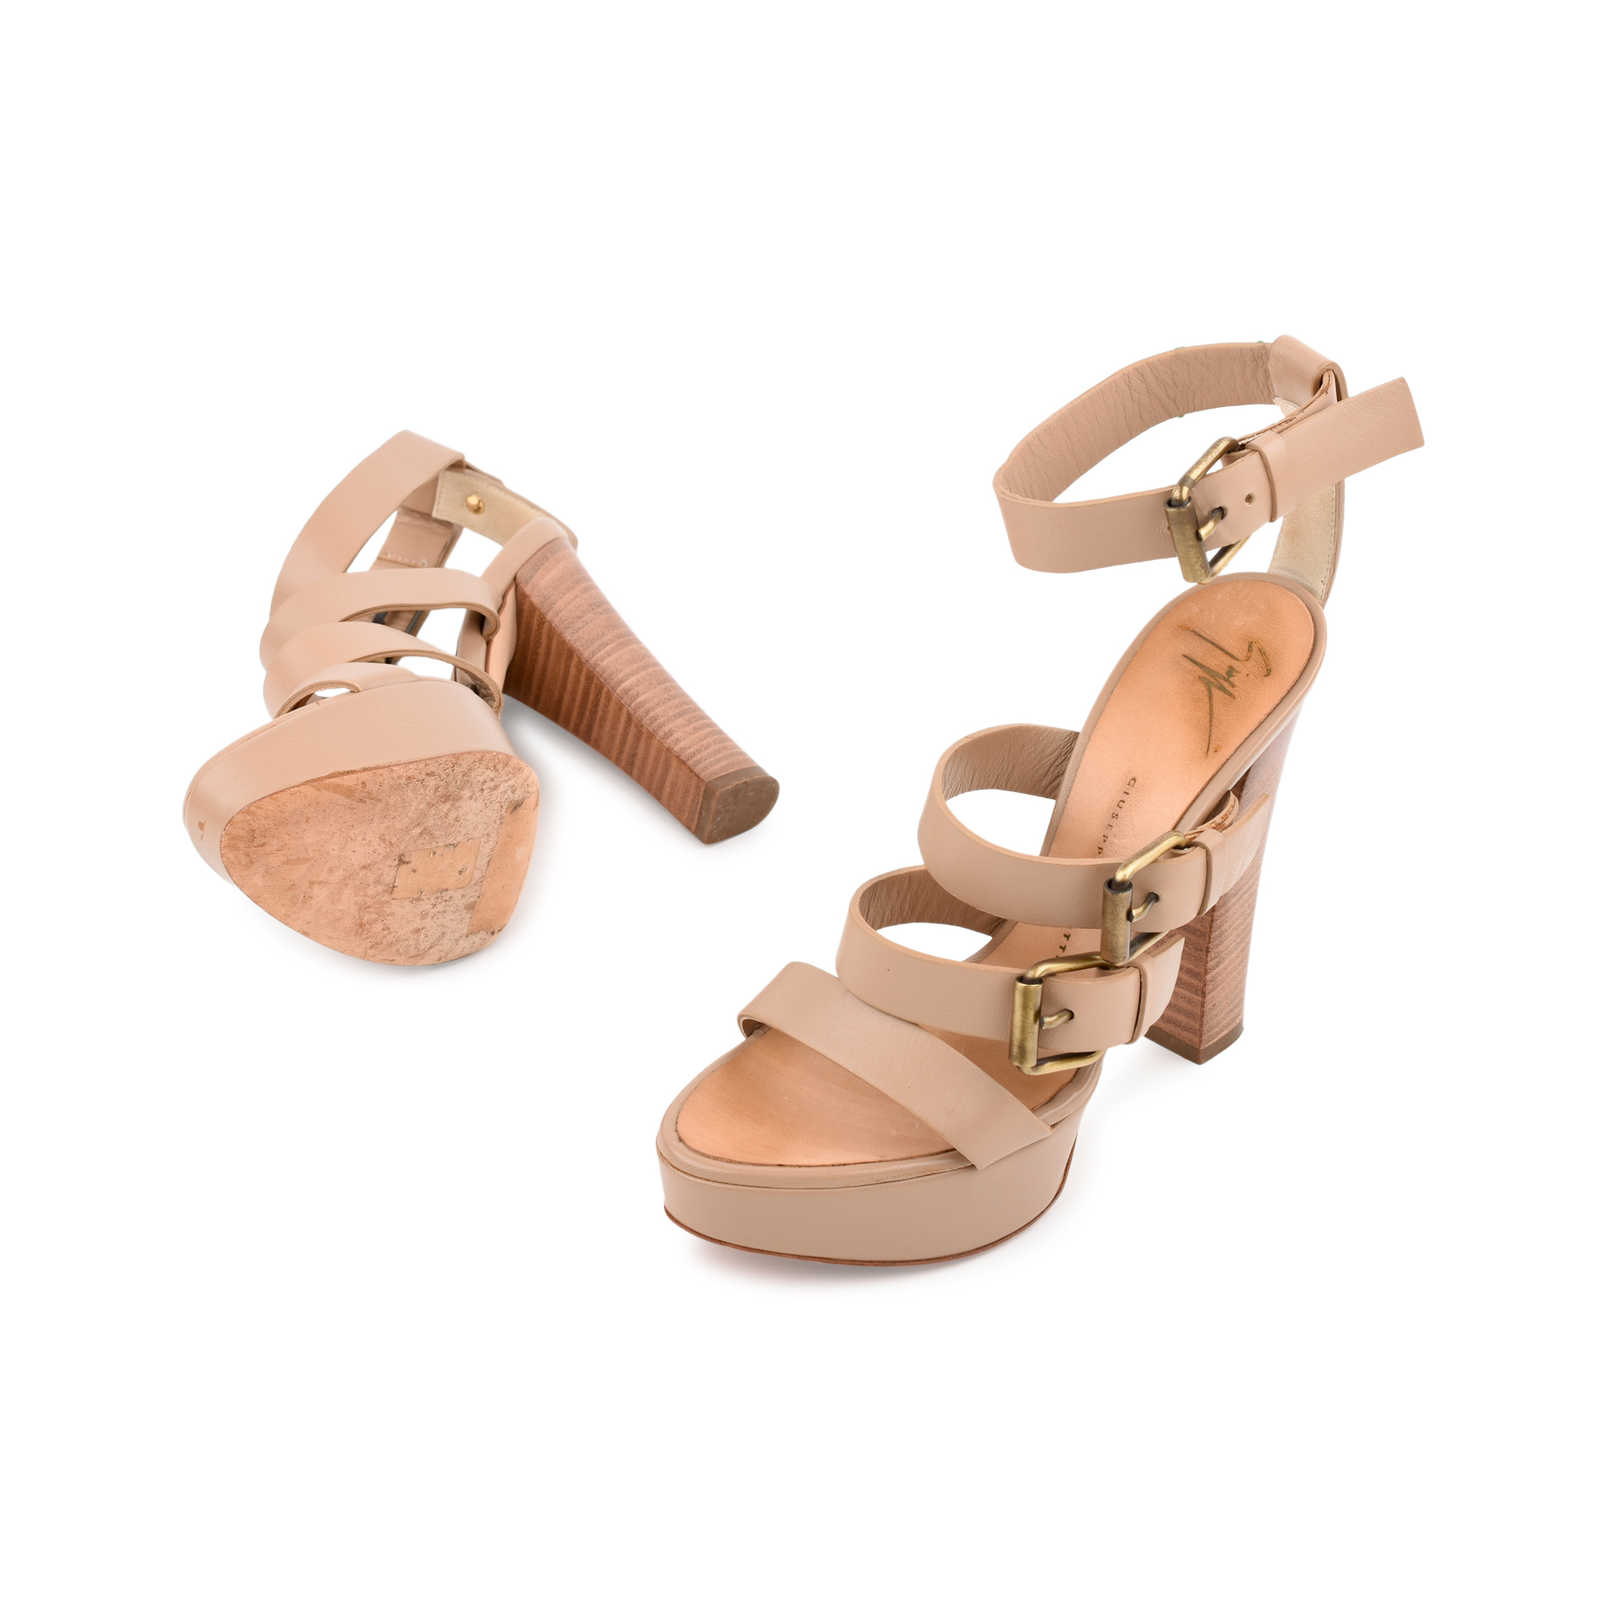 7450cf4073f2 ... Authentic Second Hand Giuseppe Zanotti Strappy Buckle Sandals (PSS-080-00214)  ...